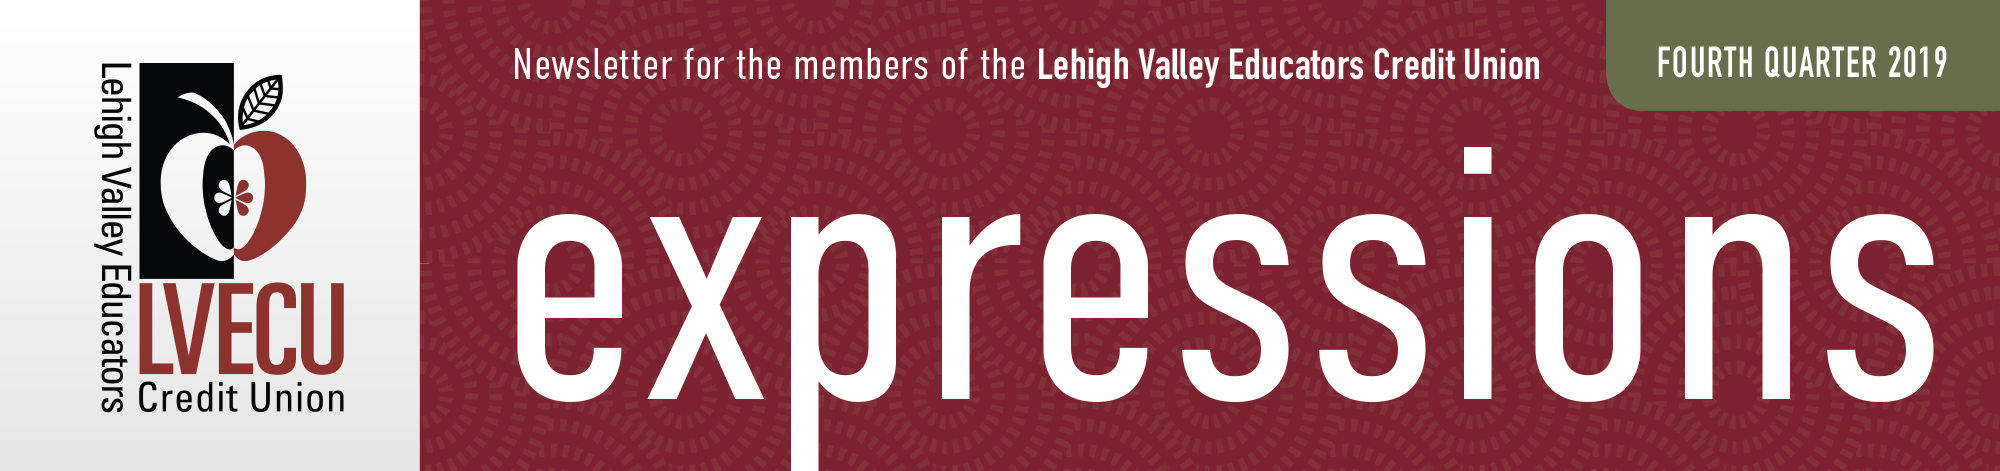 Newsletter-for-the-members-of-lehigh-valley-educators-credit-union-third-quarter-2019